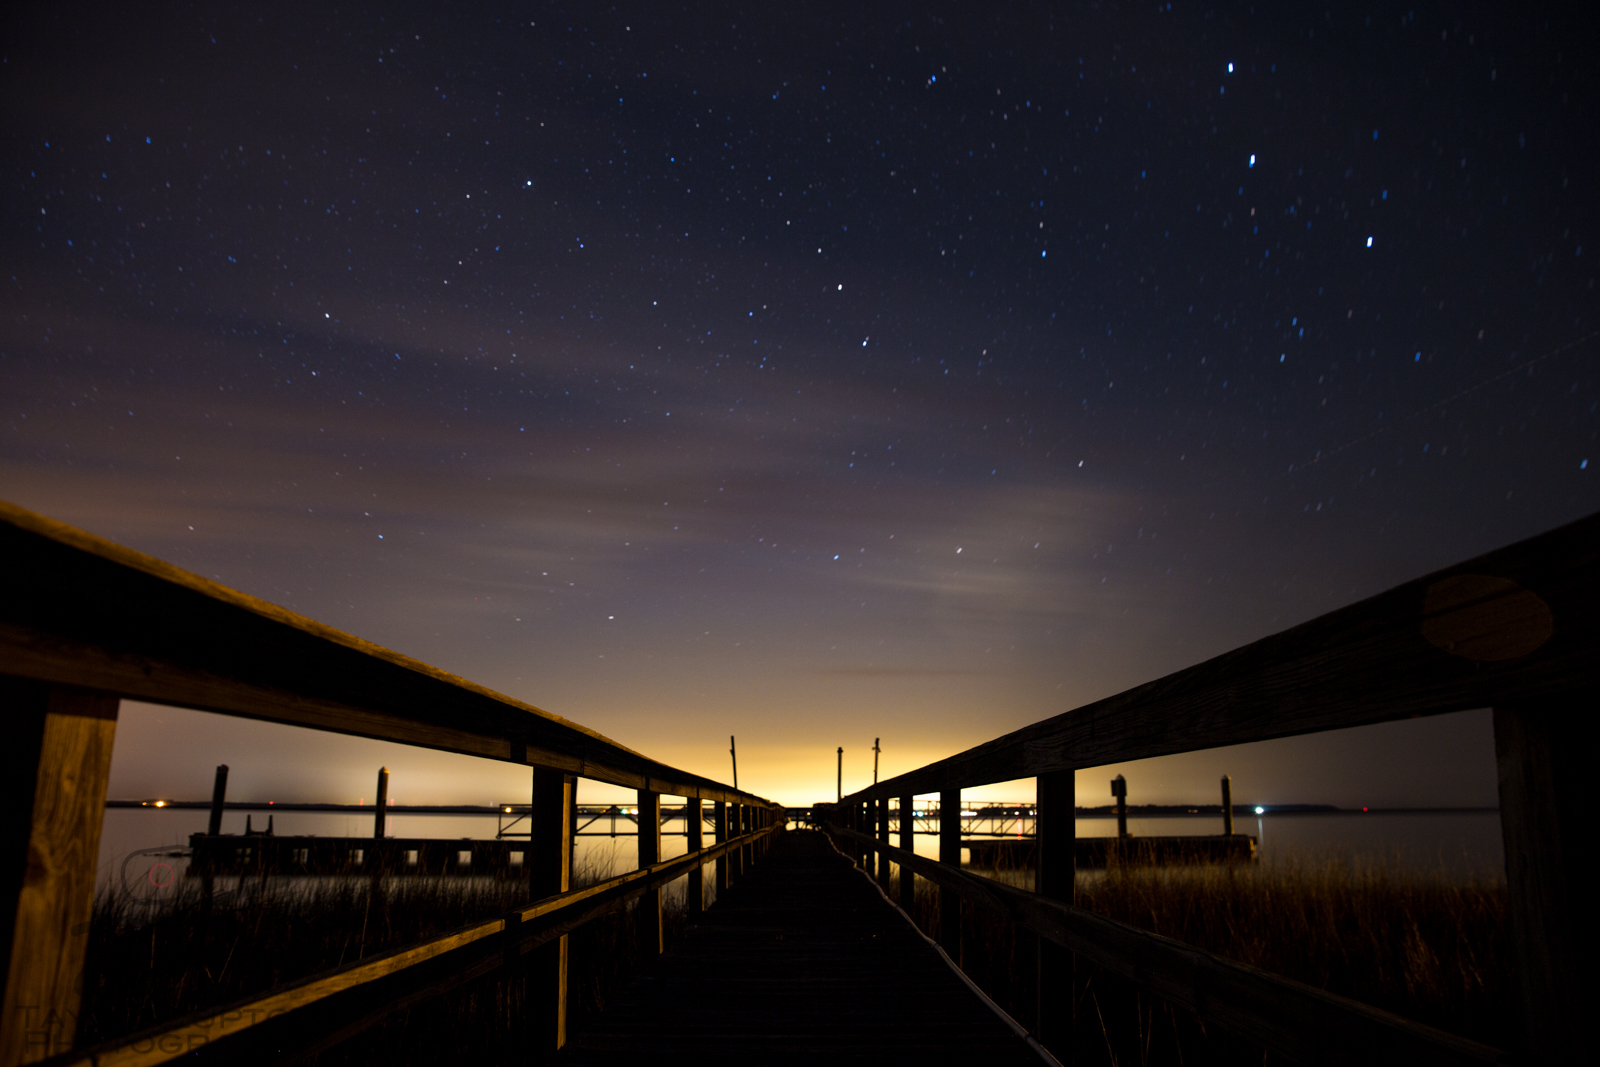 Stars Above the Boards